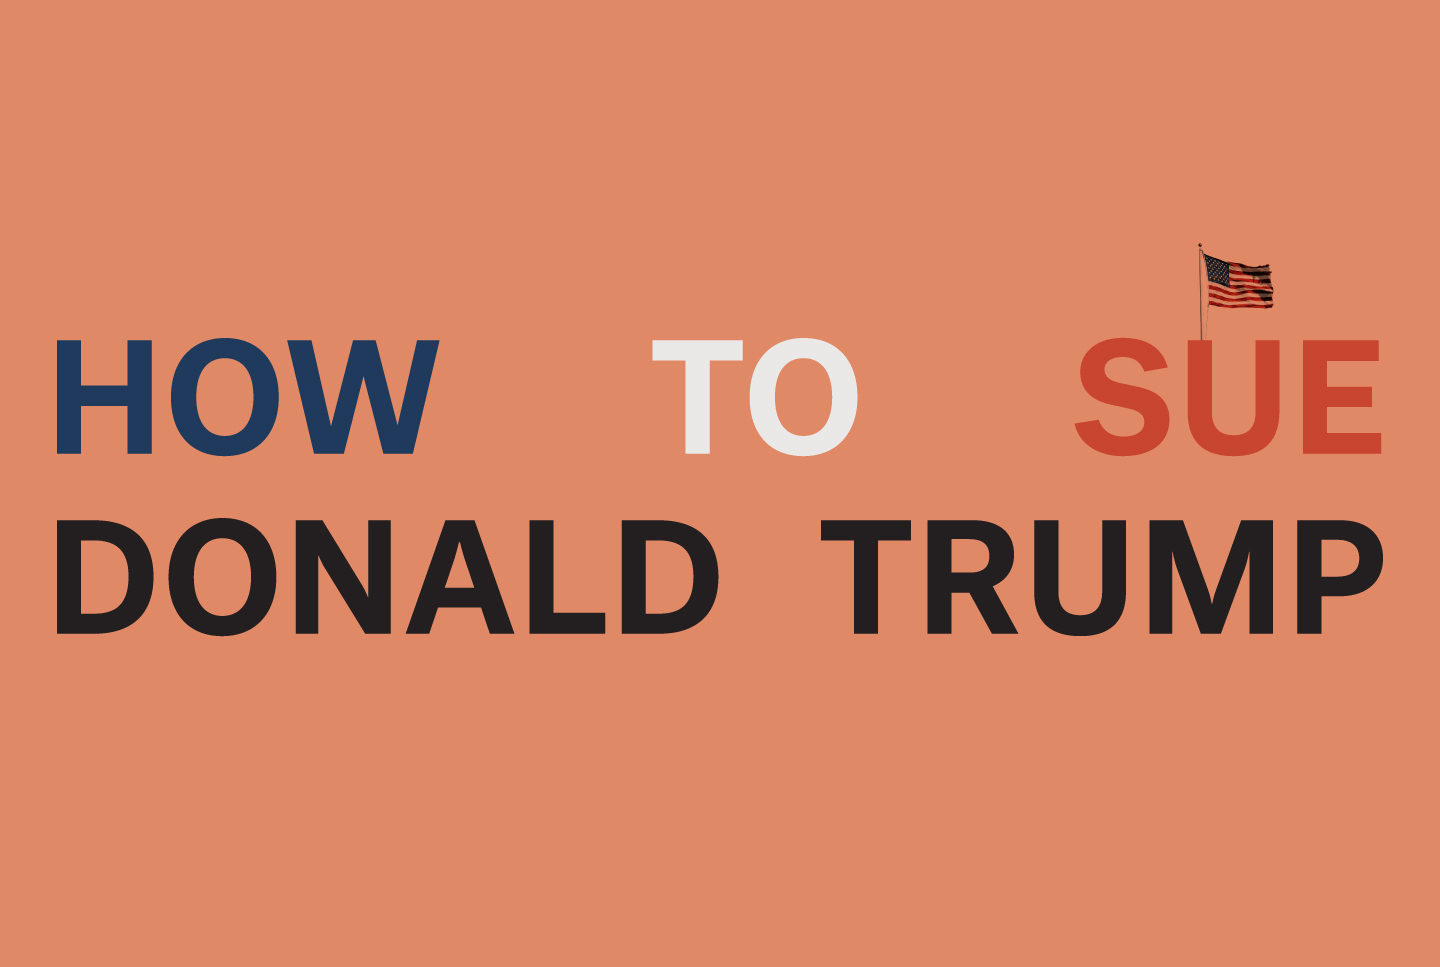 How To Sue Donald Trump